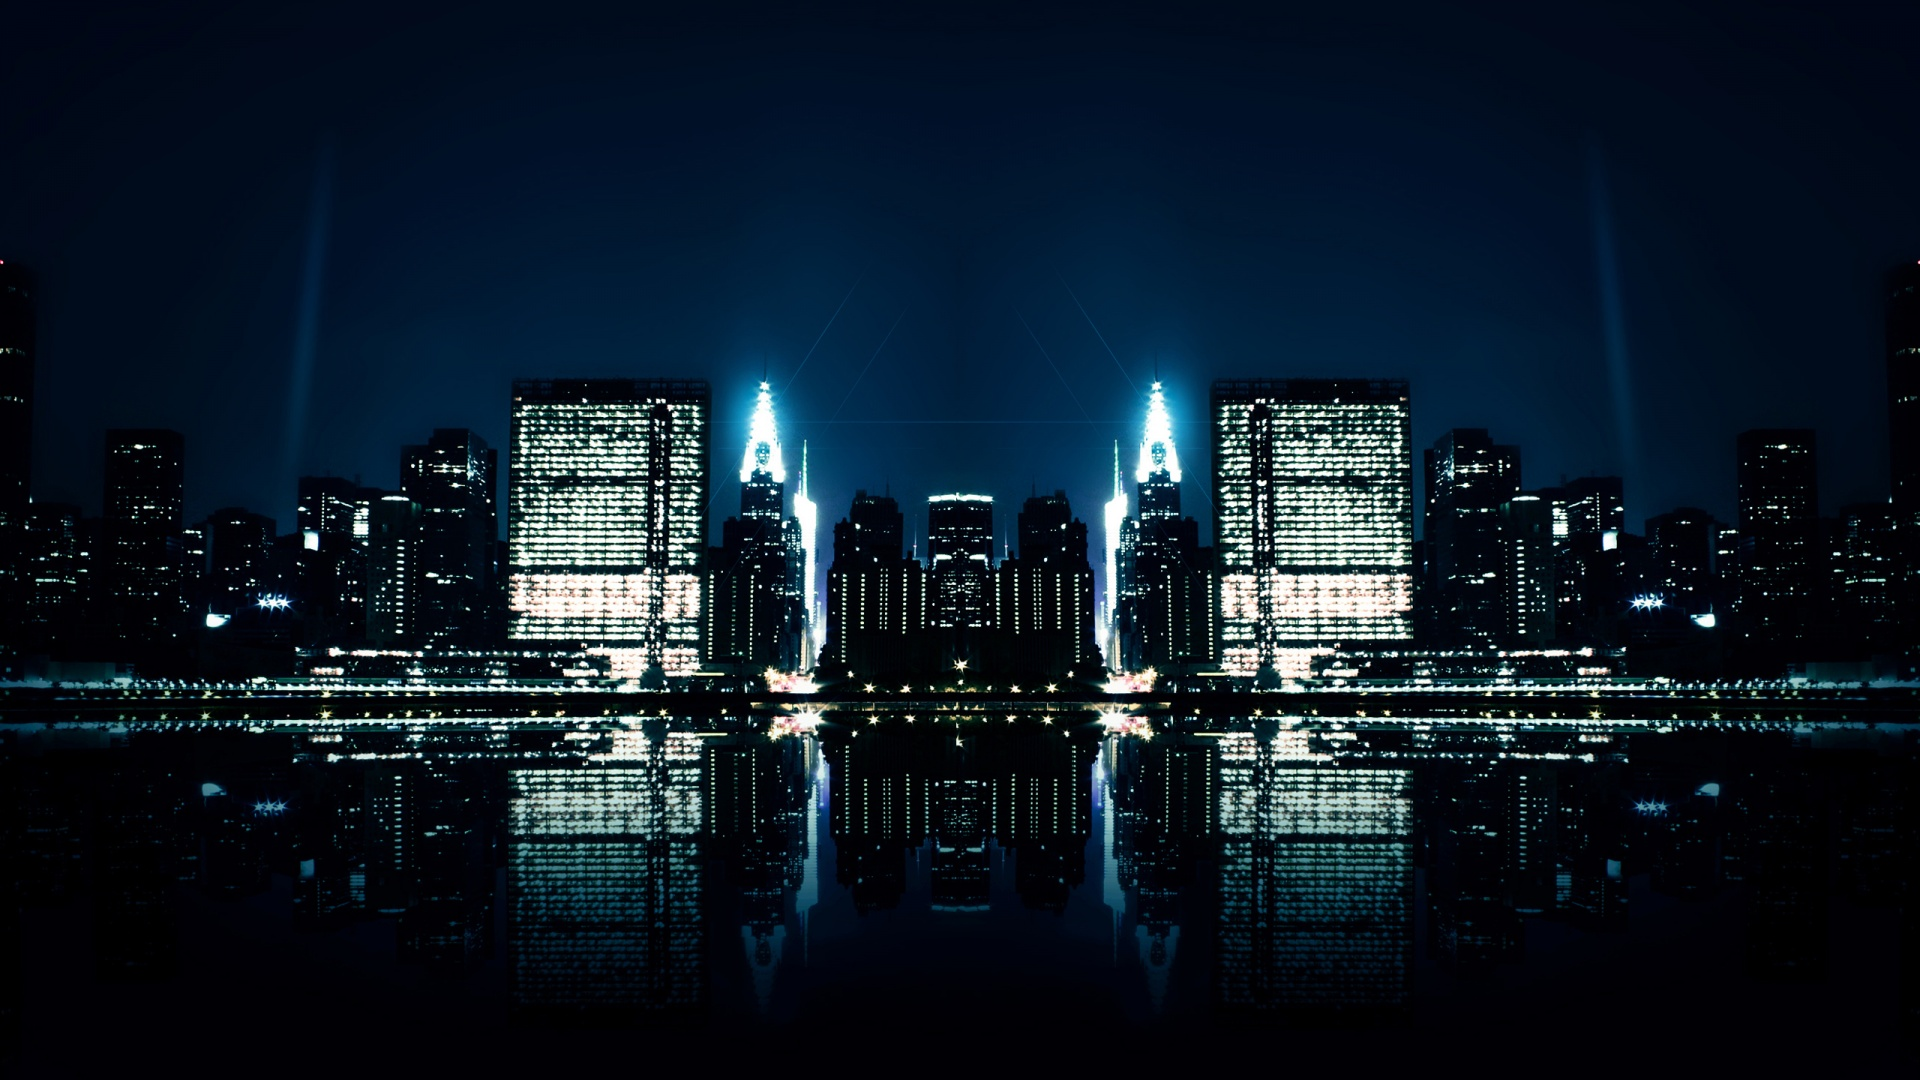 Night City Live Wallpapers Android Apps On Google Play 1920x1080